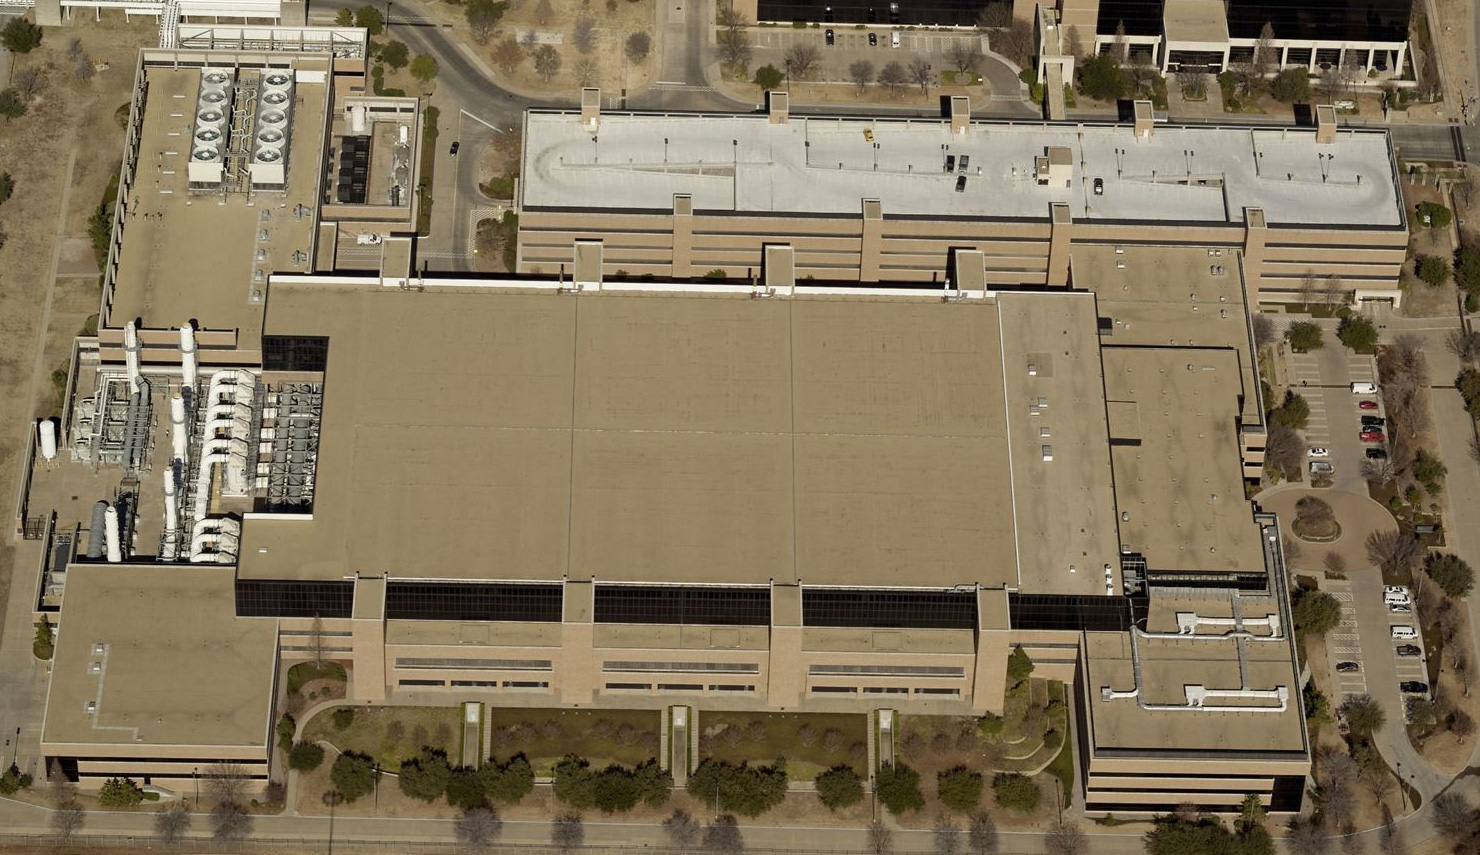 Aerial view of Texas Instruemnts DMOS 6 building.